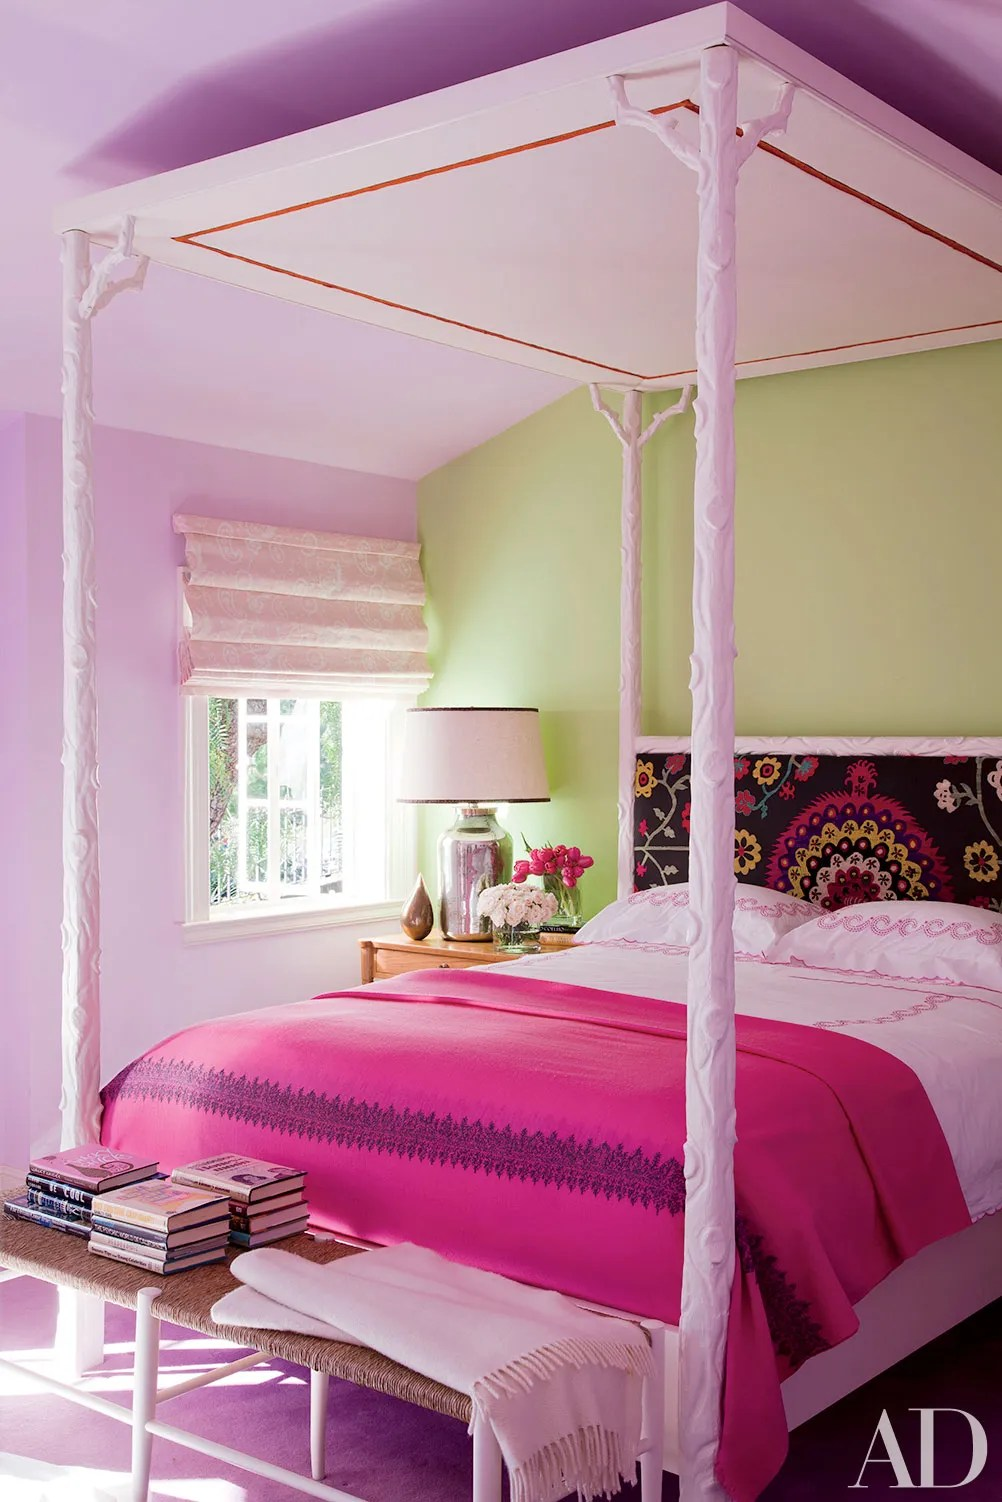 Pink Room Decoration Inspiration Photos | Architectural Digest on Room Decoration  id=50924